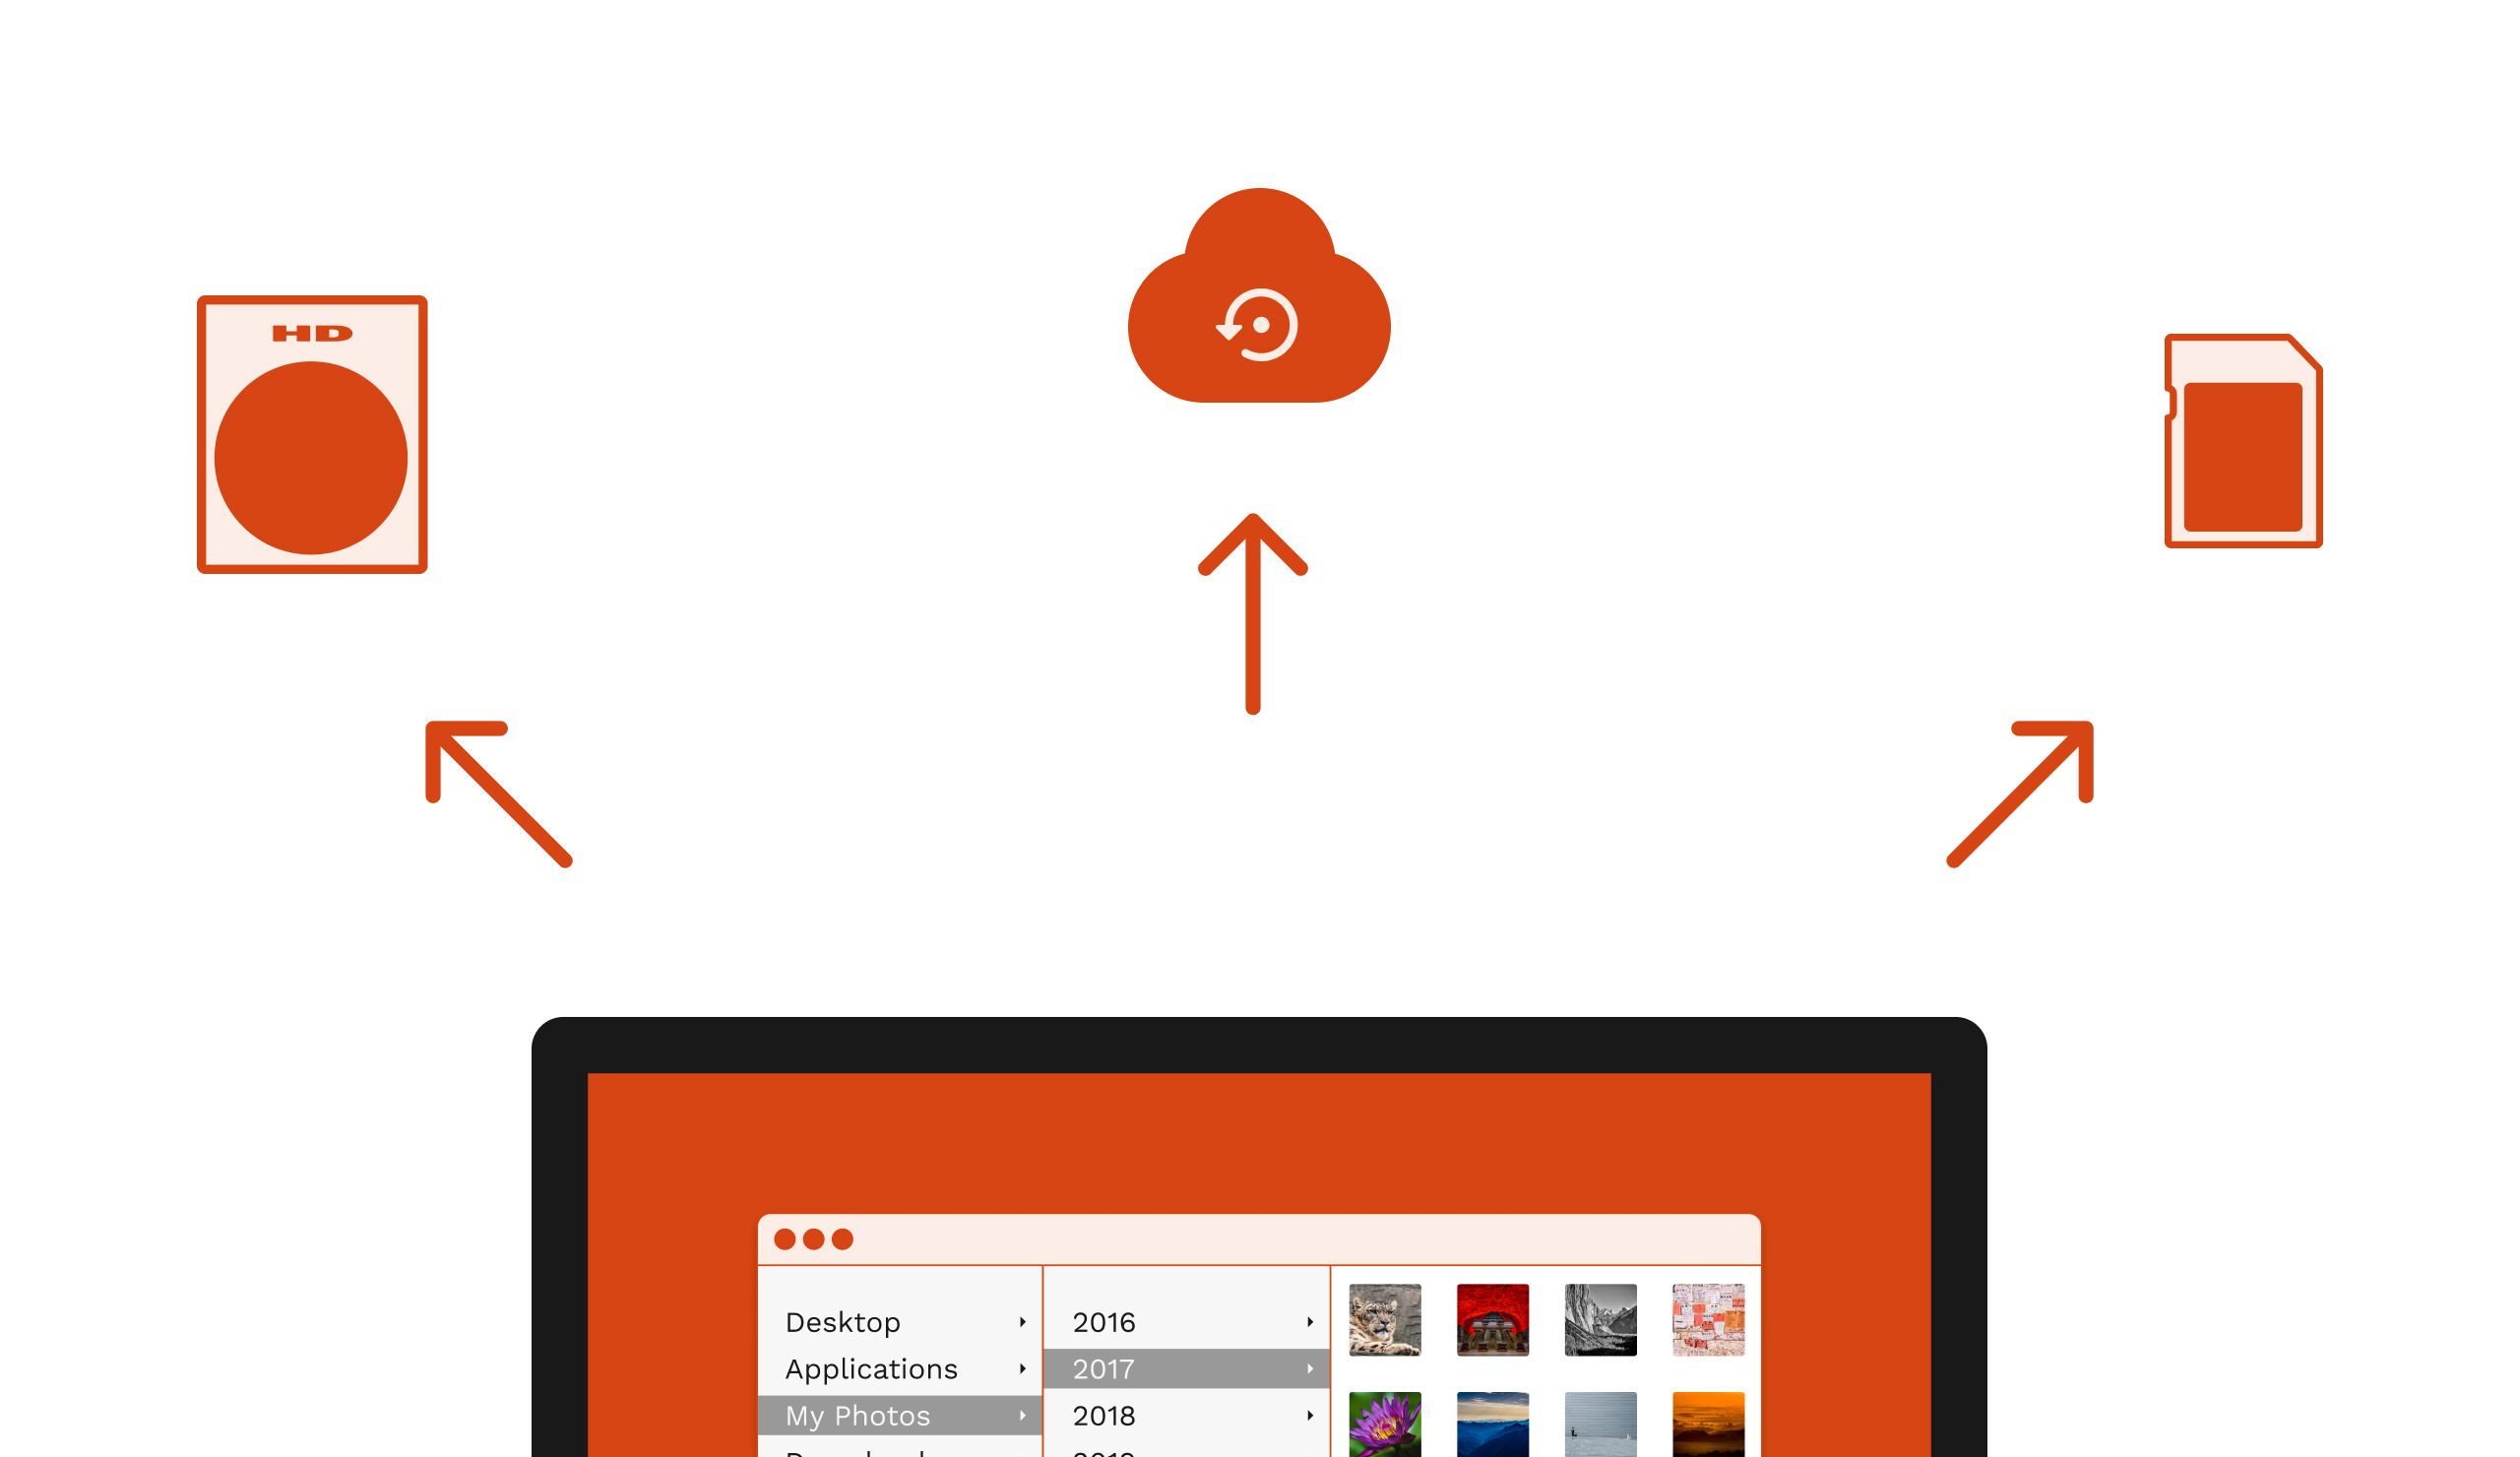 Concept image of backing up image files